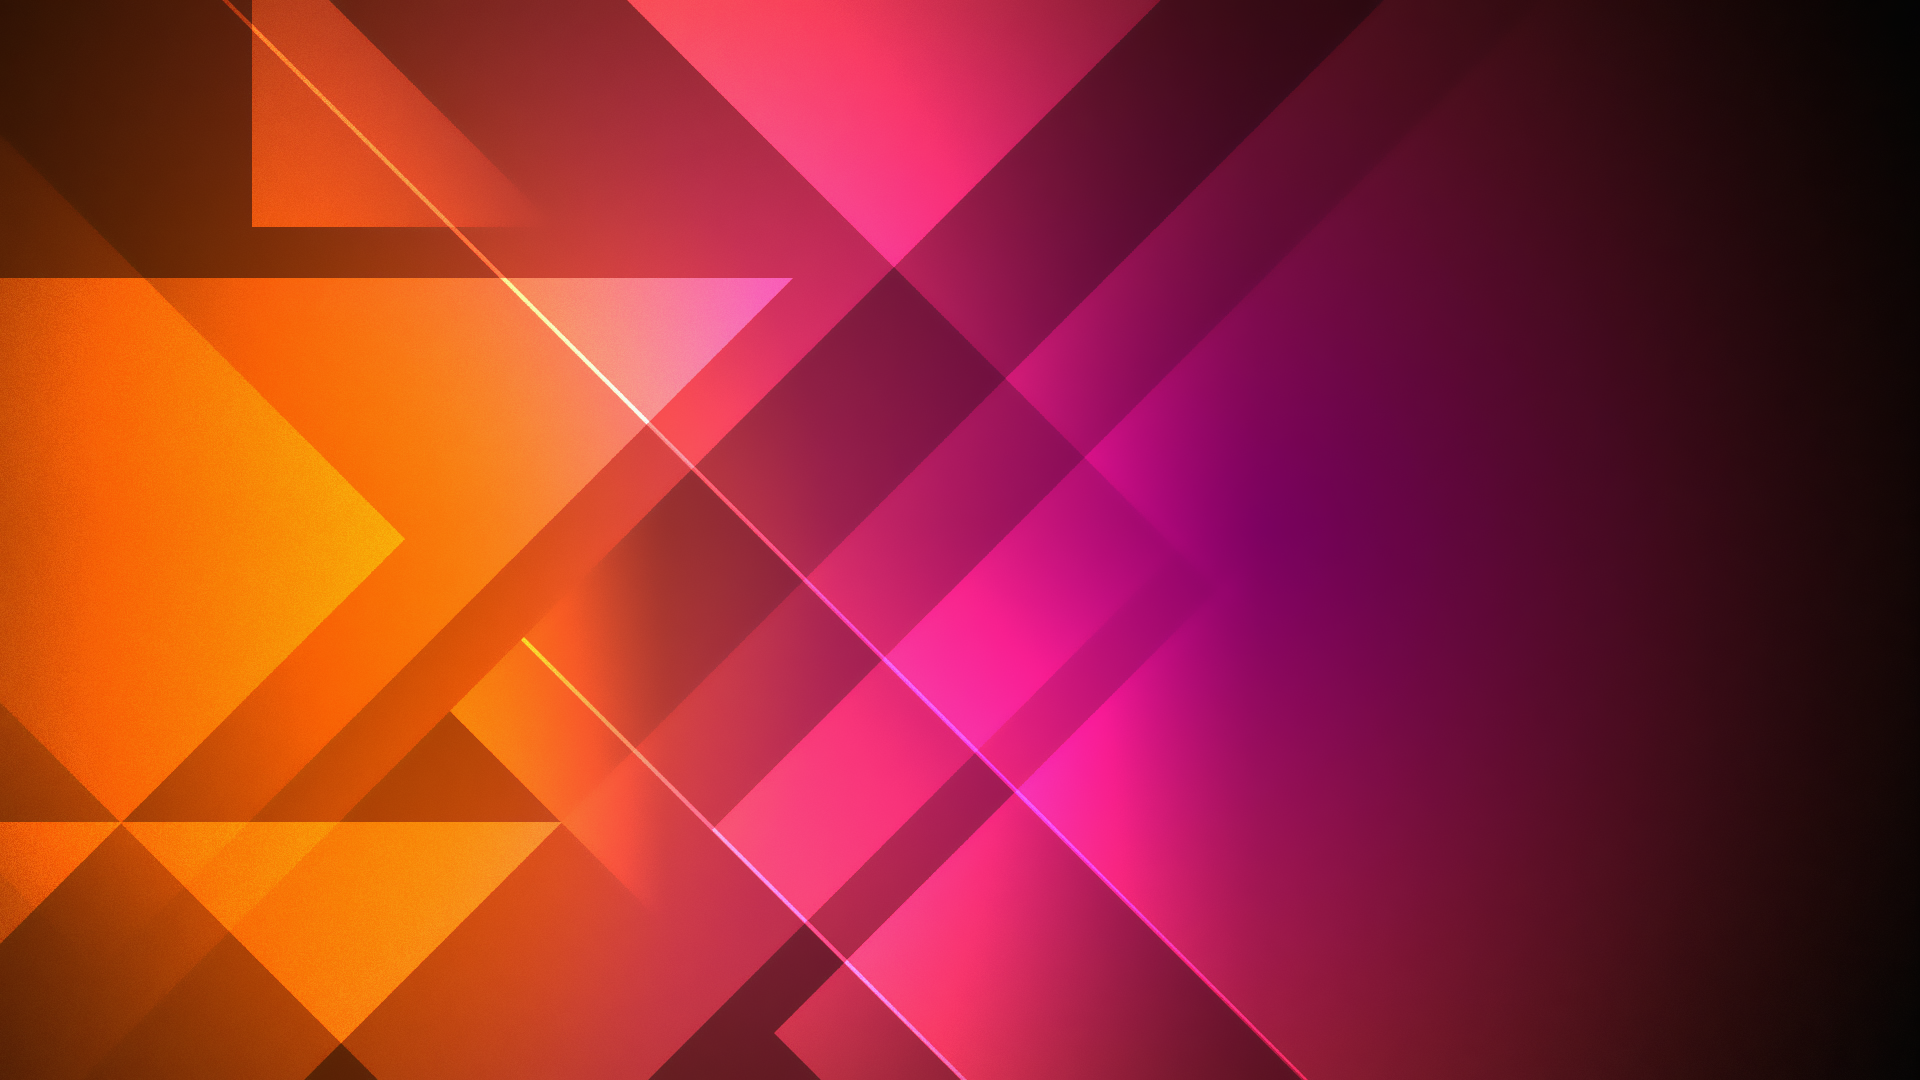 abstract wallpaper Archives   1920x1080 Wallpapers 1920x1080